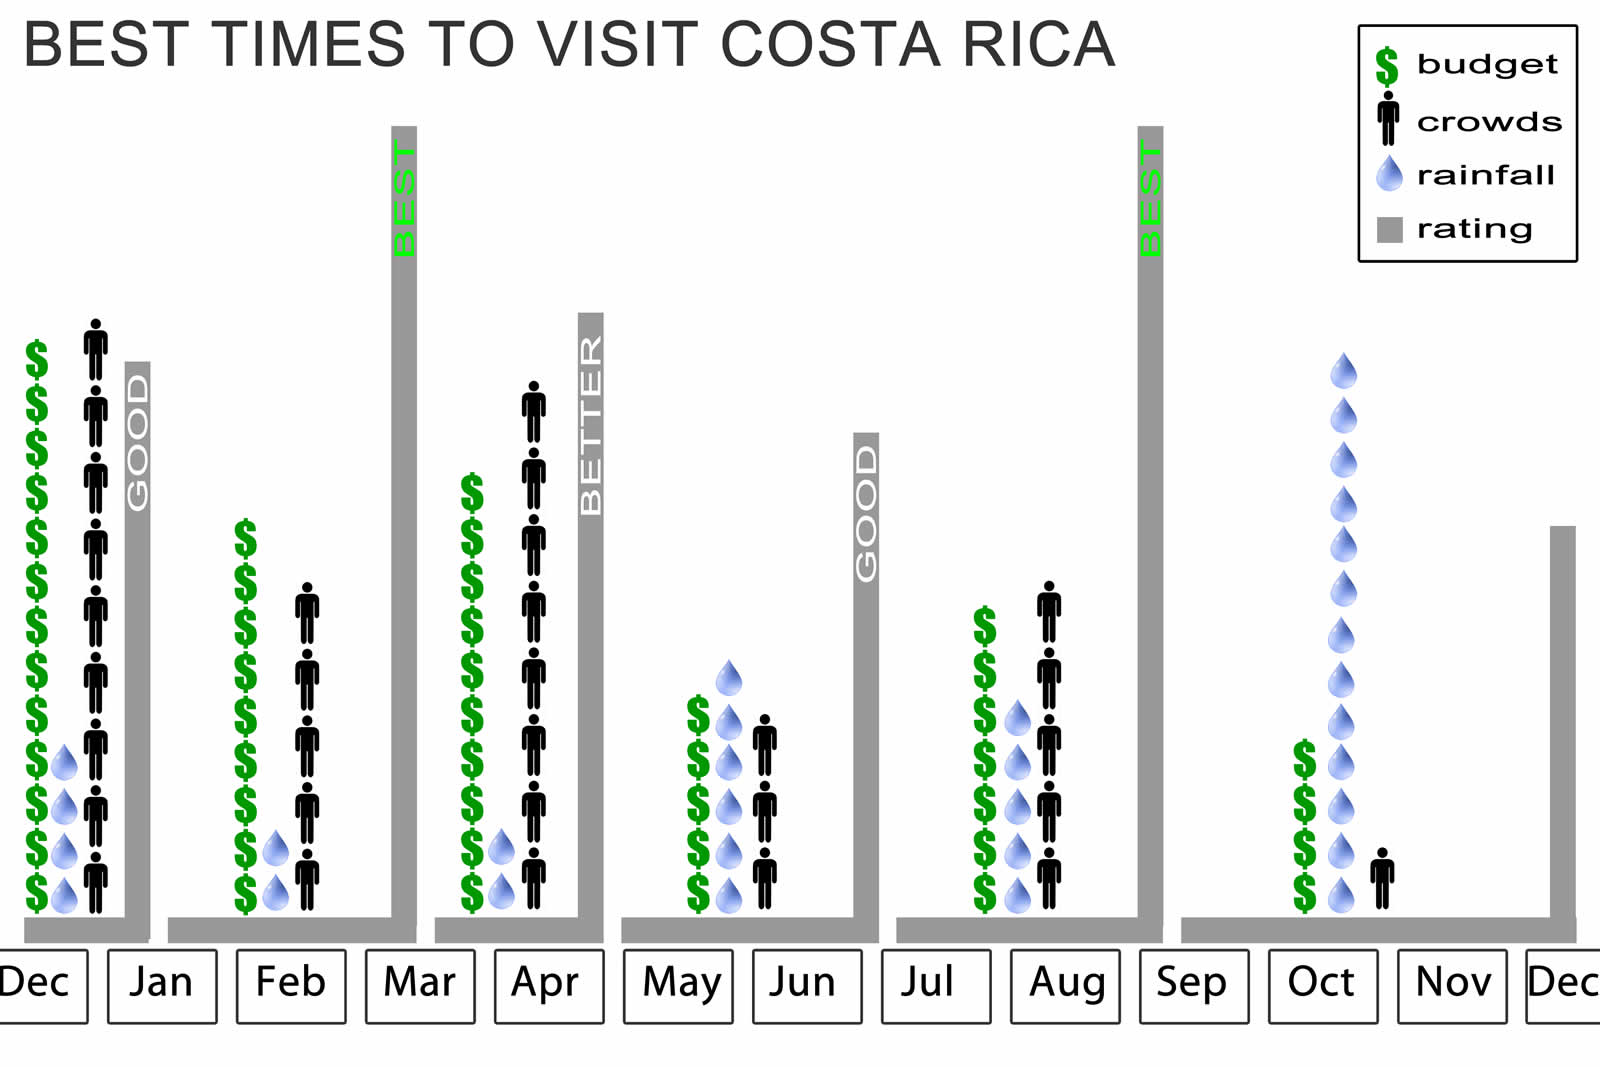 best time diagram kubota bx2200 starter wiring chart of the times to visit costa rica